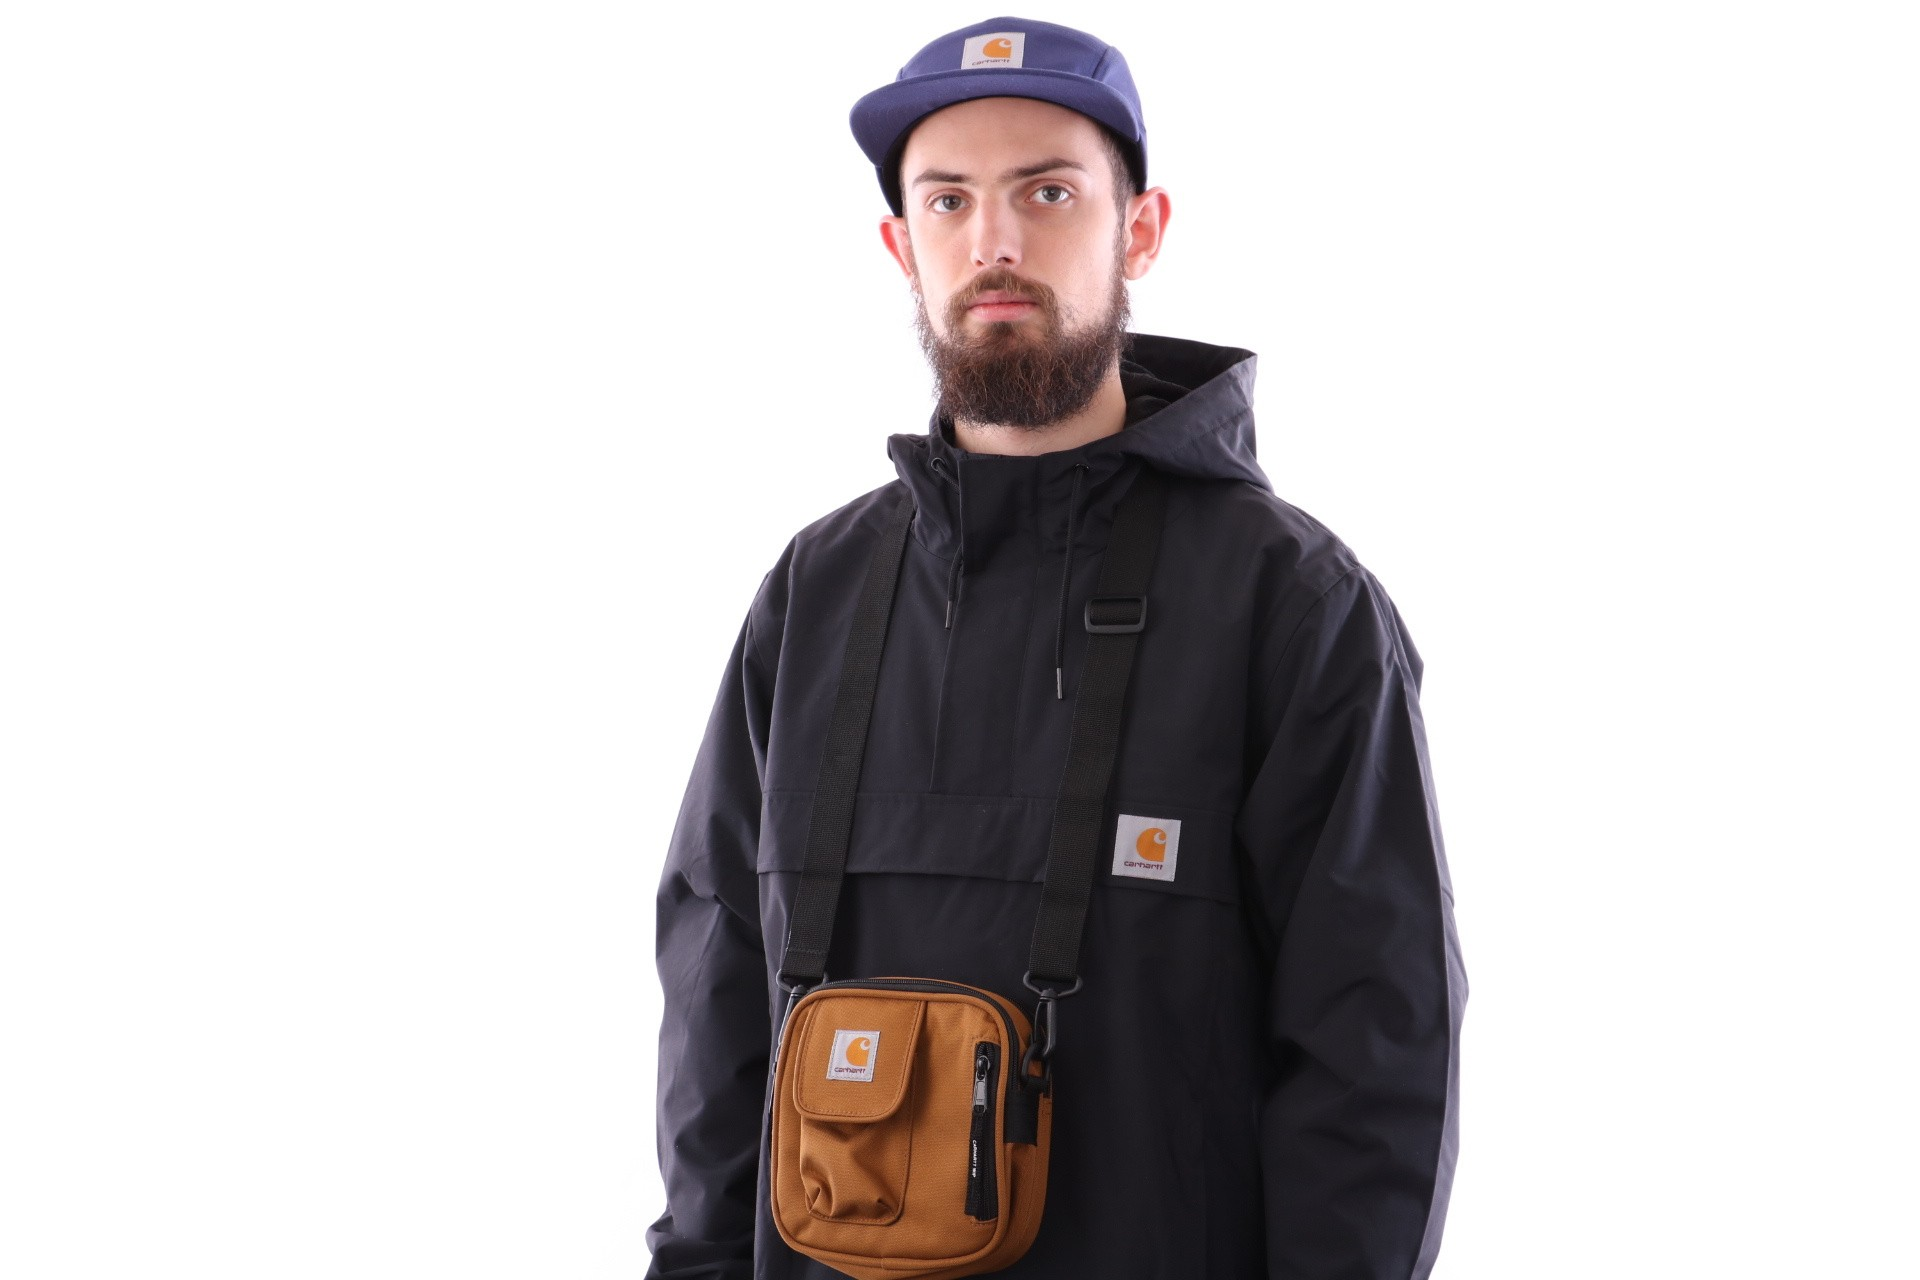 Afbeelding van Carhartt WIP Essentials Bag, Small I006285 Schoudertas Hamilton Brown